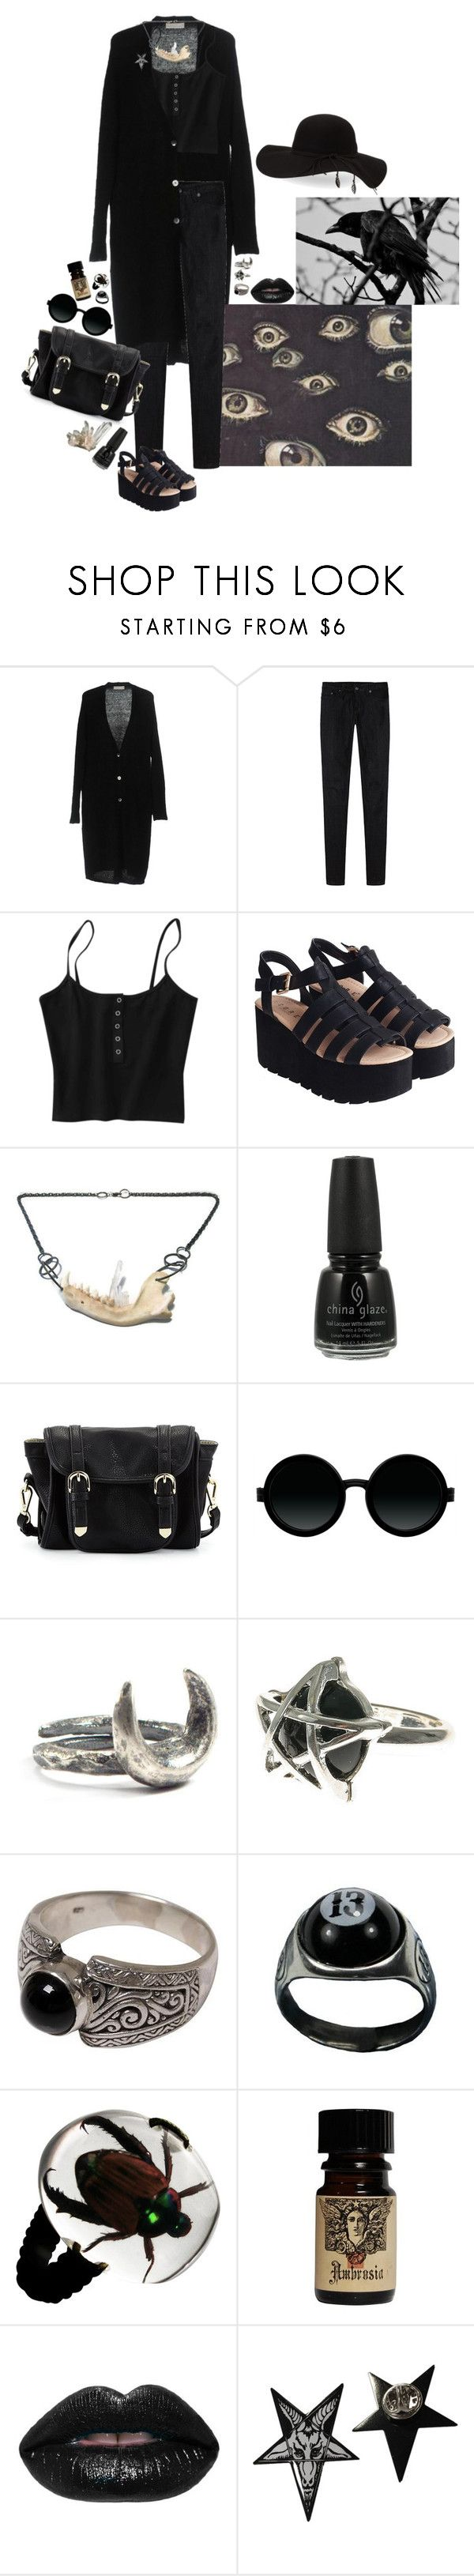 """Untitled #711"" by dust-mite ❤ liked on Polyvore featuring Stefanel, R13, China Glaze, Poverty Flats, Moscot, Dreams of Norway, NOVICA and BCBGeneration"